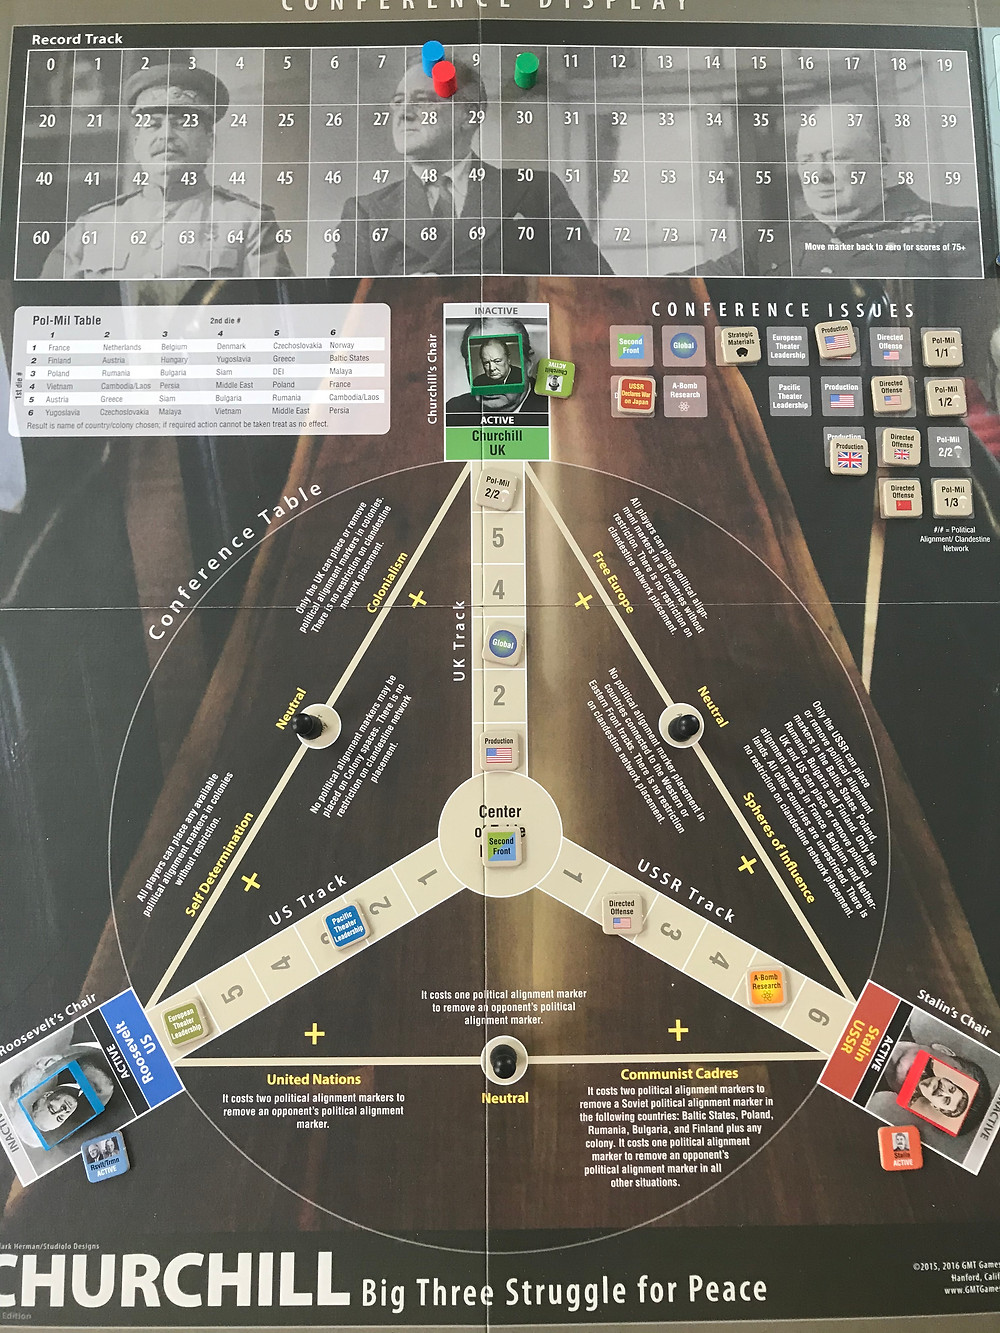 "Churchill has won three issues: US production, Pol mil 2/2, and global. He'll get to move one of the global markers towards him, gain 2 clandestine network markesr and 2 political alignment markers to earn points (or deny other players points), and he gains one of the USA production markers to supplement his own that round. The USA won the European Theater Command and Pacific Theater Command issues. This allows the USA to decide which nation will be in supreme command of each theater of war, and also earns the USA extra offensive support tokens to use as they choose in each theater. The USSR won the A-bomb research issue, so their marker will advance on the A-bomb research track regardless of how the USA rolls for the research. The USSR also won a US Directed Offensive issue, which means the US must spend two production on offensive support which the USSR may place in whichever front they choose. Since the UK won the most issues, they win the conference and earn 3 victory points. Also, the ""Second Front"" issue remained at the center of the table, indicating that all three nations are in agreement about how that should proceed, which means the US may now officially launch D-Day and advance the western front into mainland Europe."